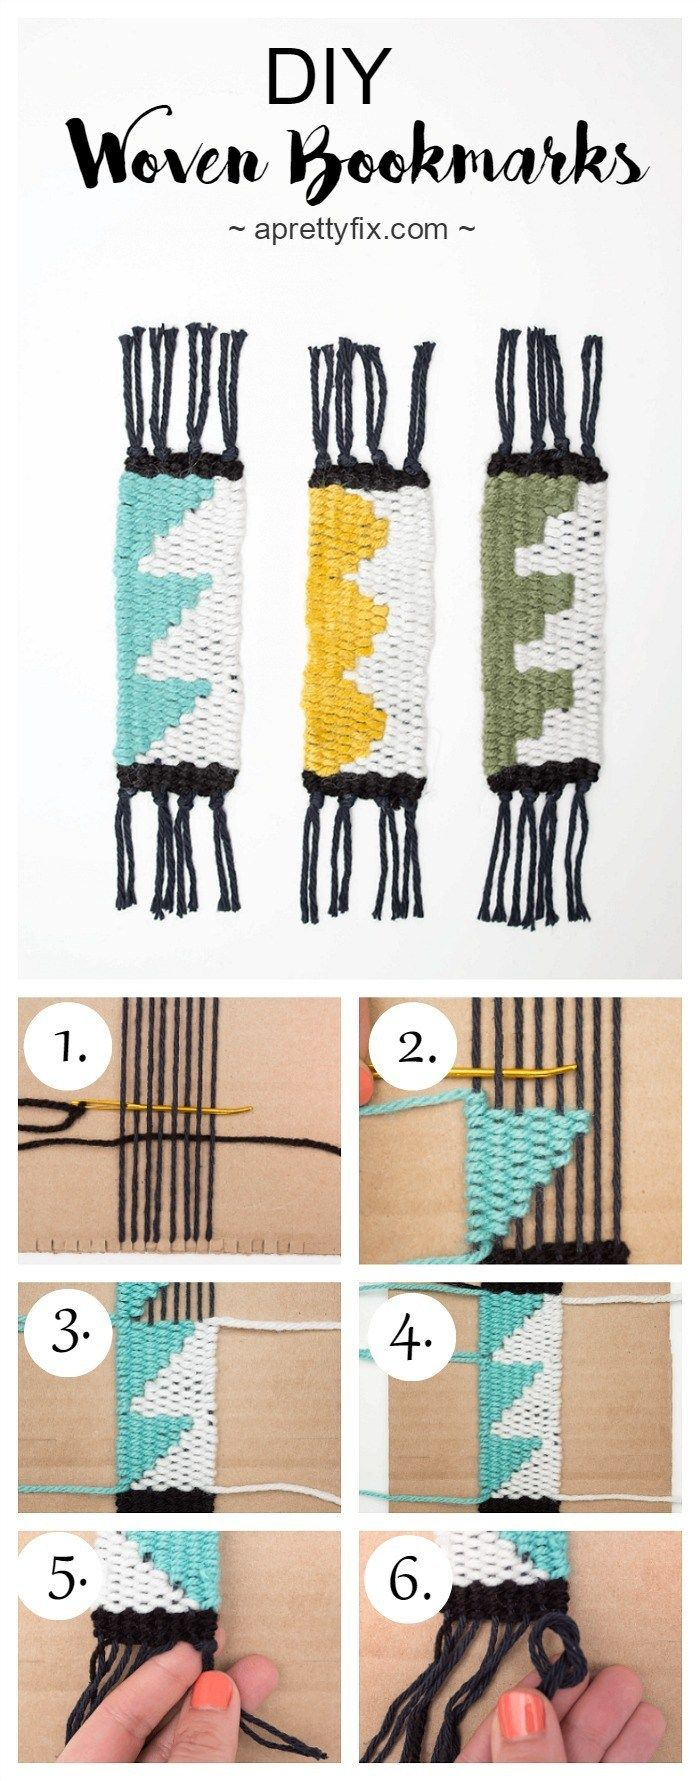 DIY Woven Bookmarks (For Beginners) - A Pretty Fix